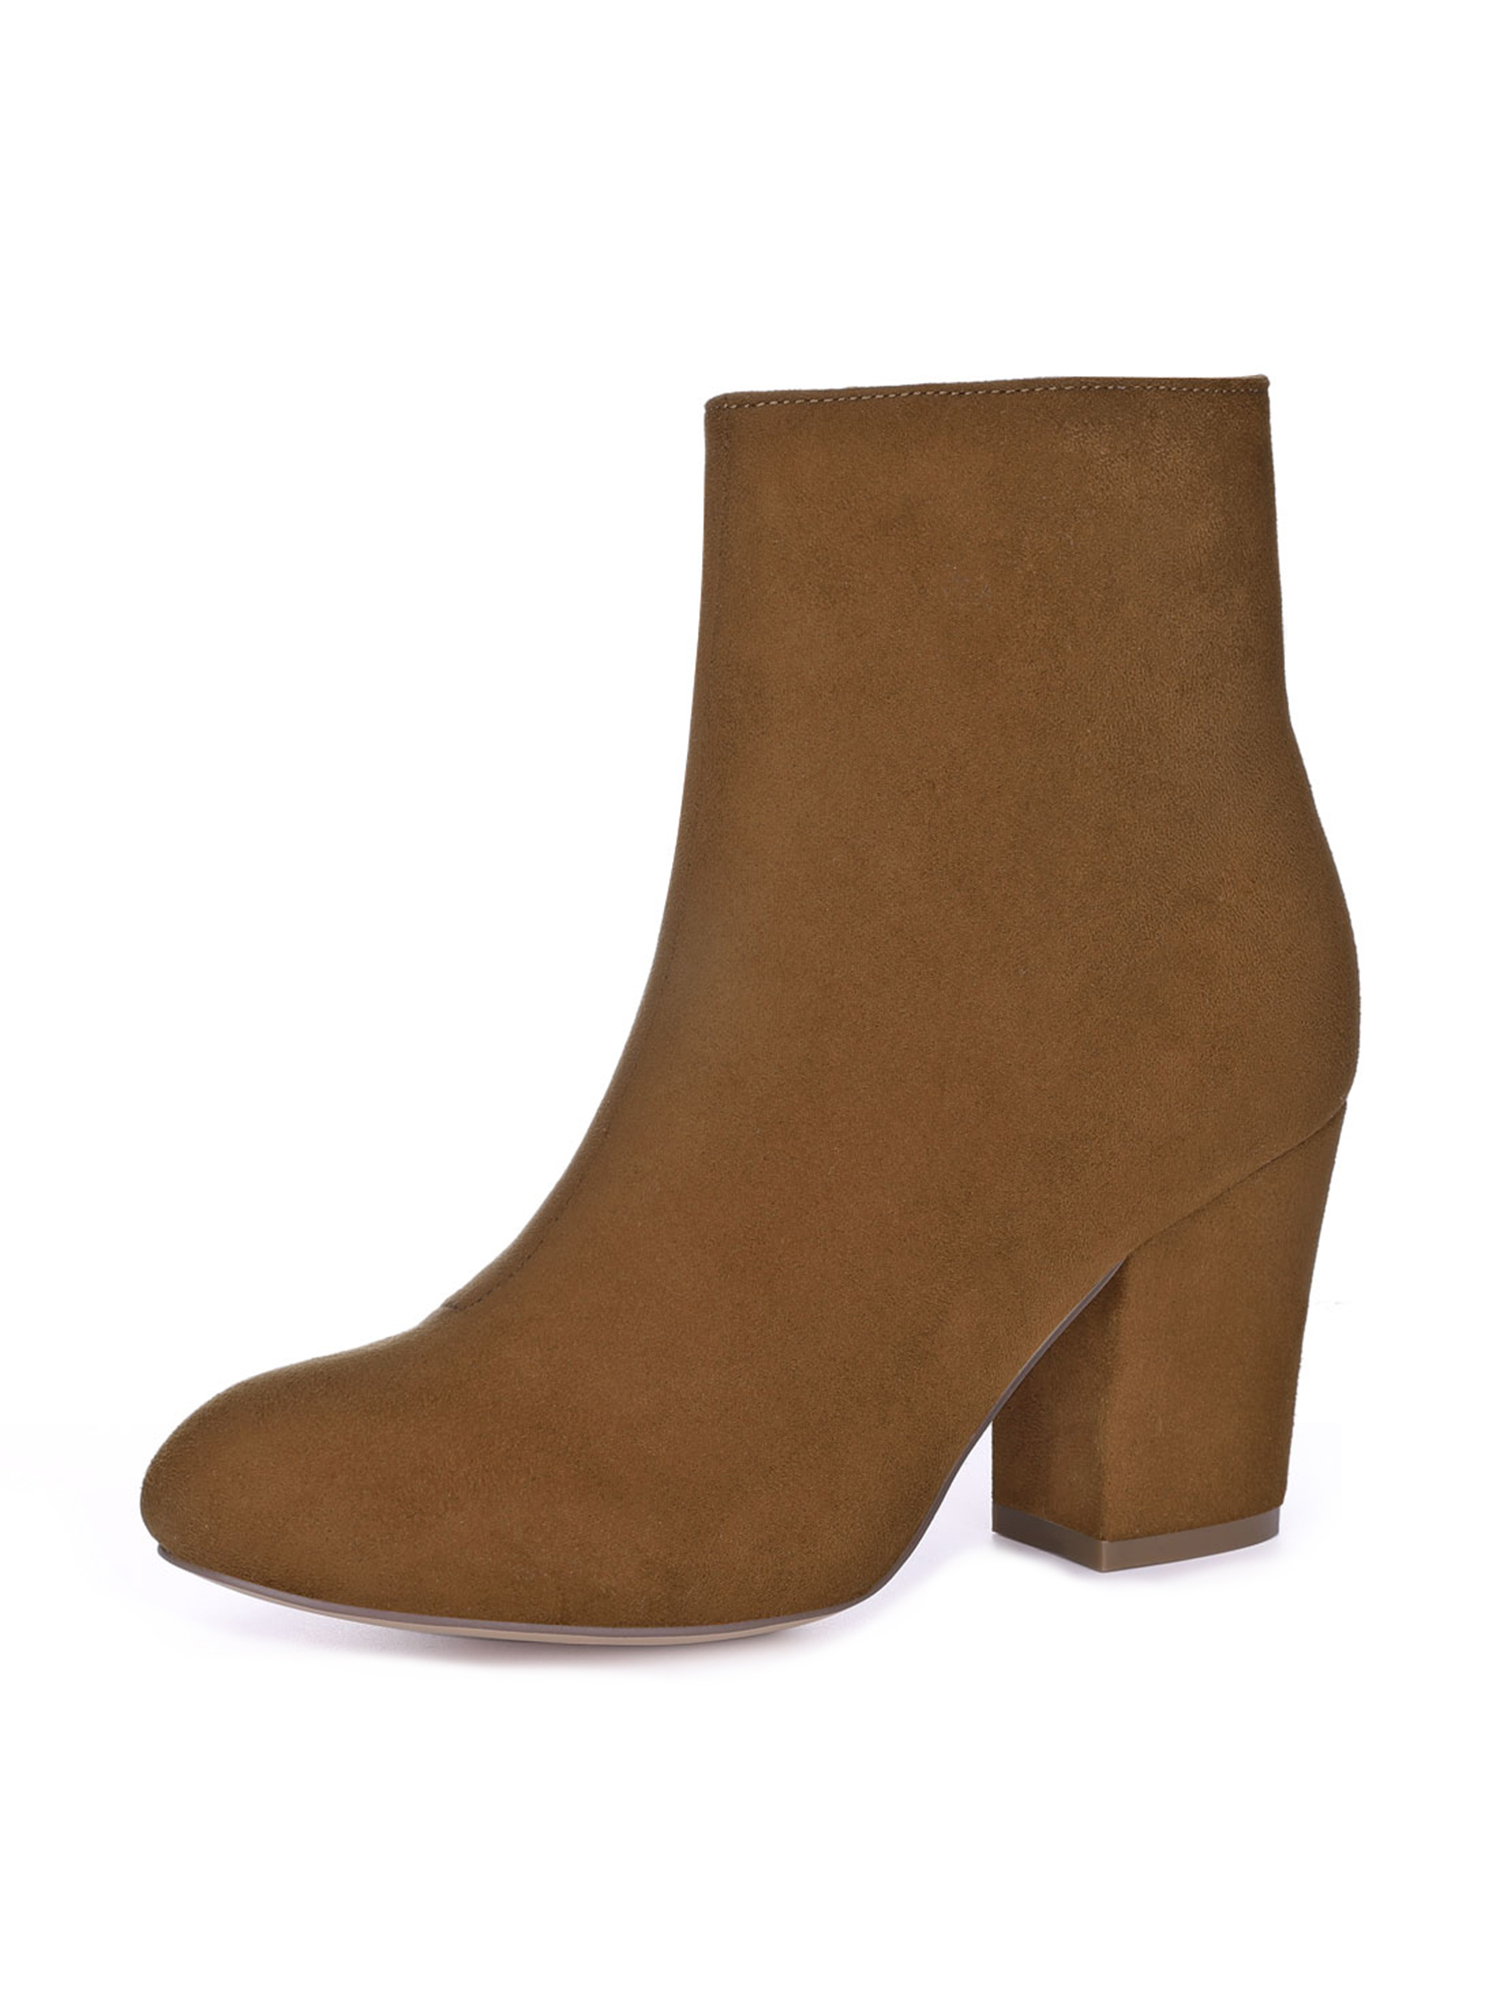 Unique Bargain Women's Round Toe Side Zipper Chunky Heel Ankle Boots Brown (Size 10)